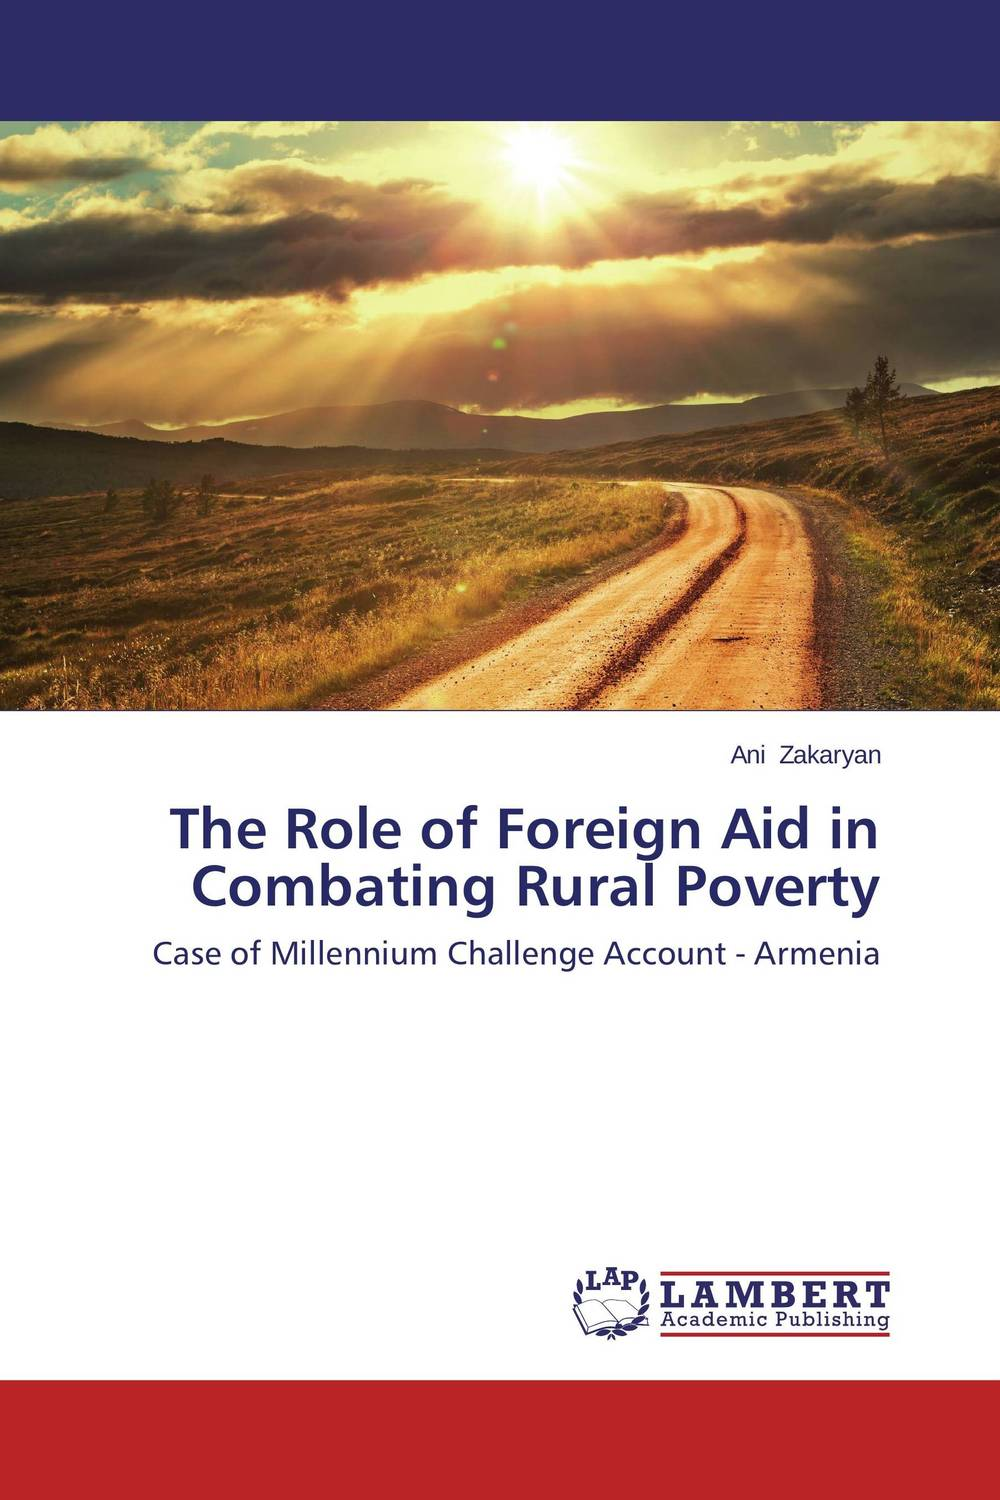 The Role of Foreign Aid in Combating Rural Poverty role of ict in rural poverty alleviation